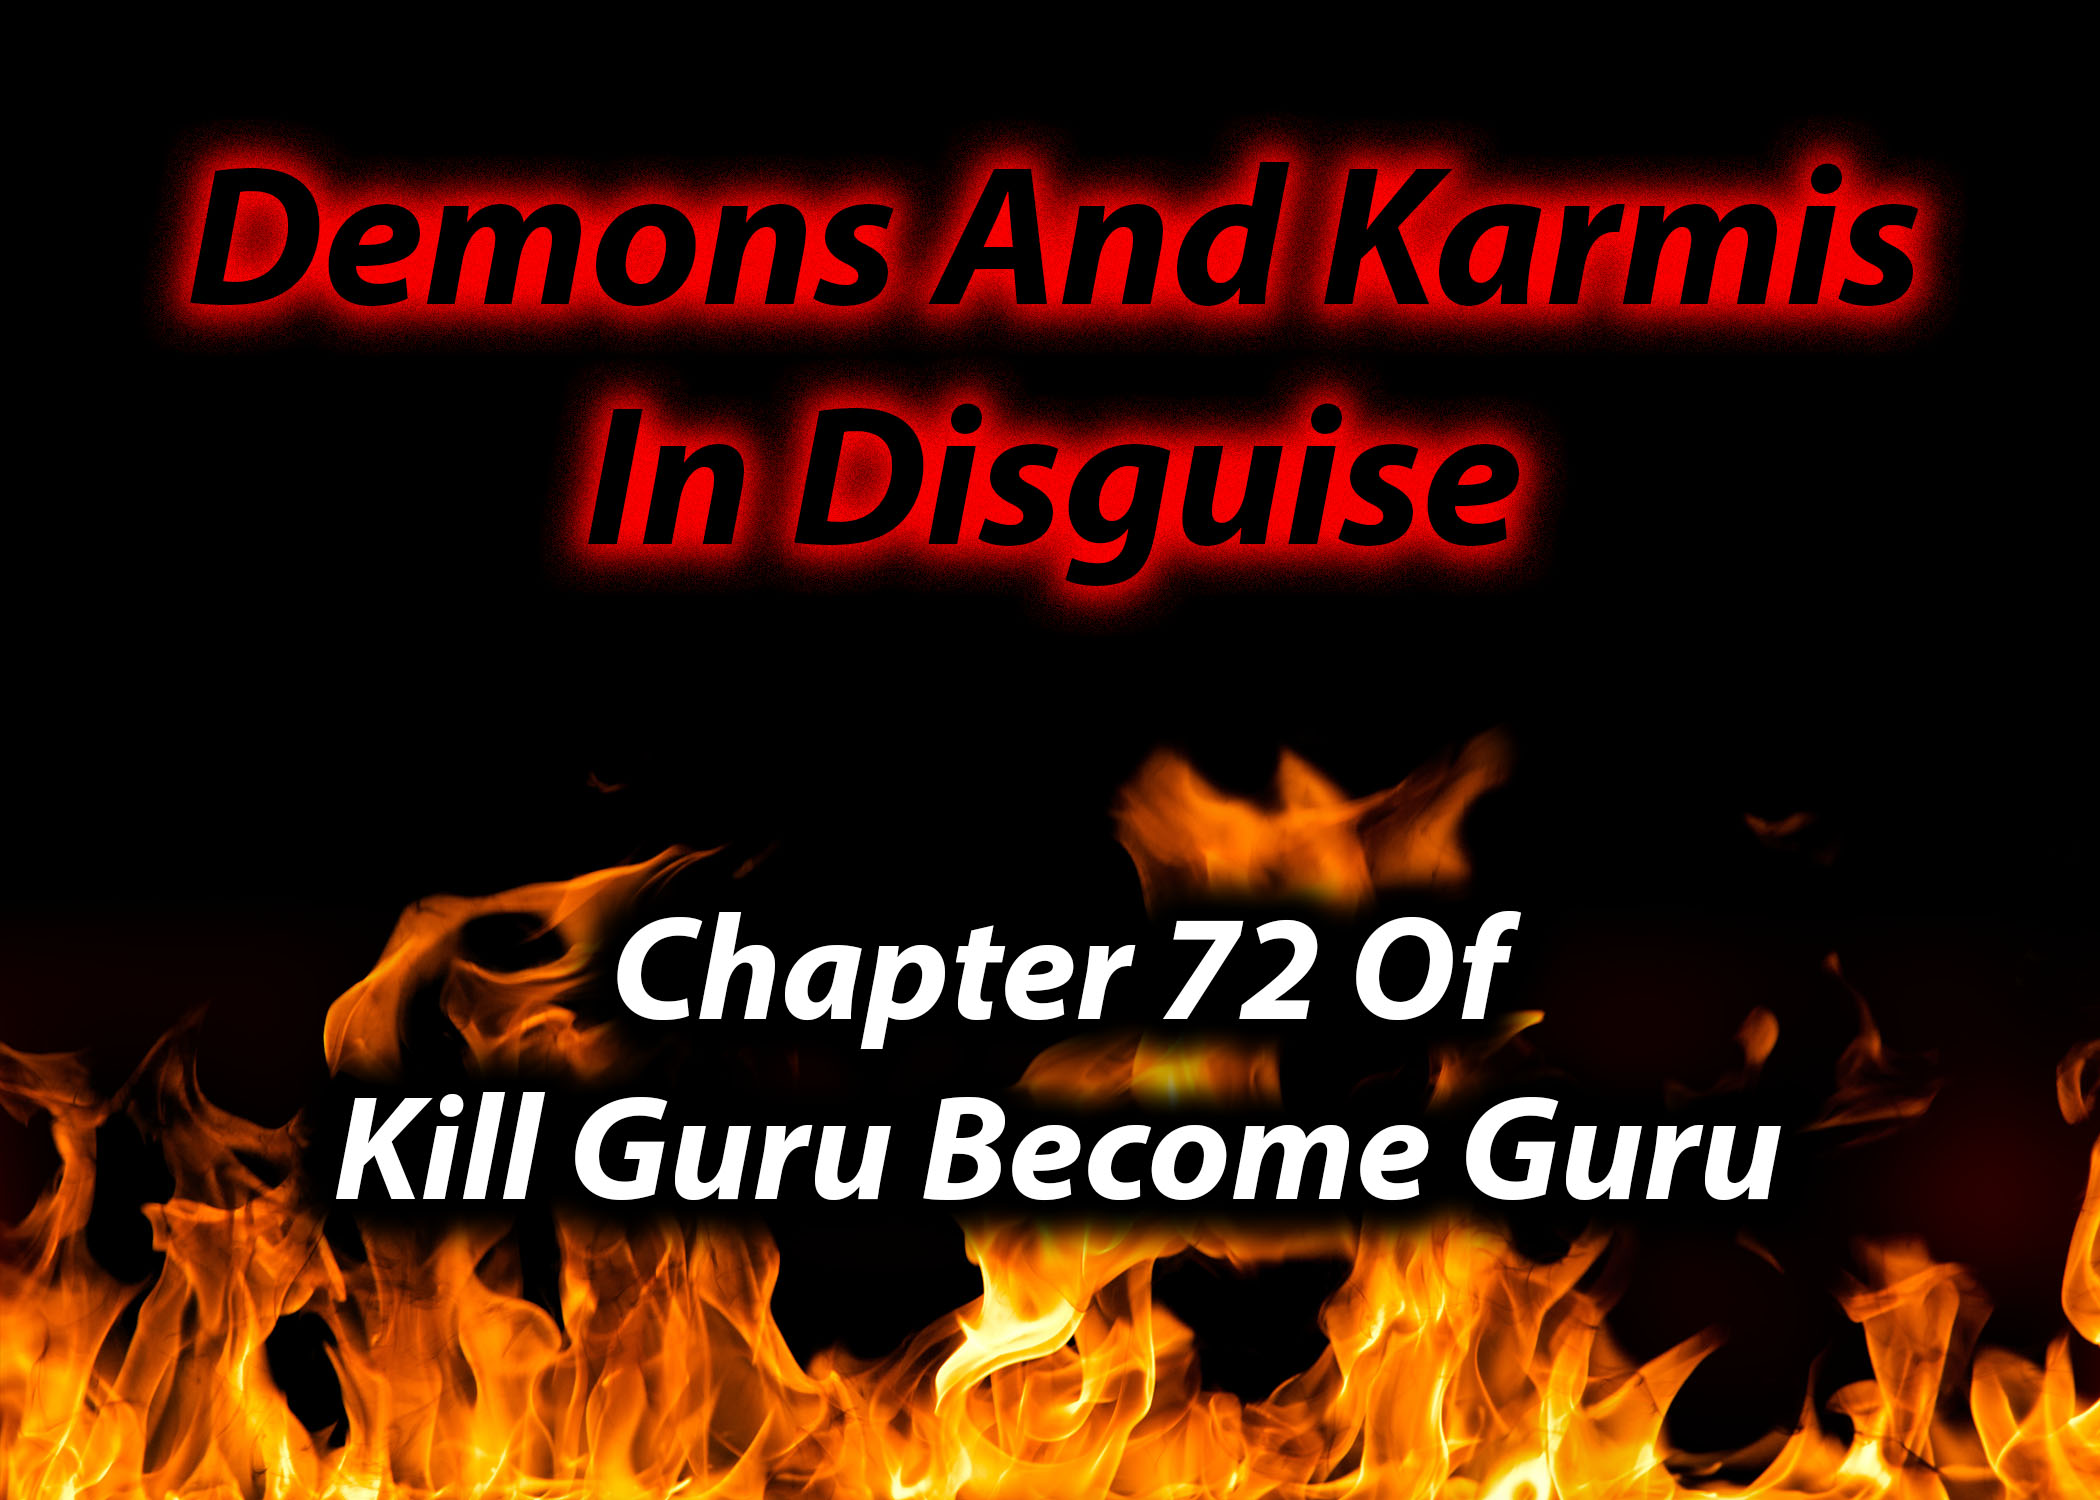 Demons and Karmis in disguise of Devotees